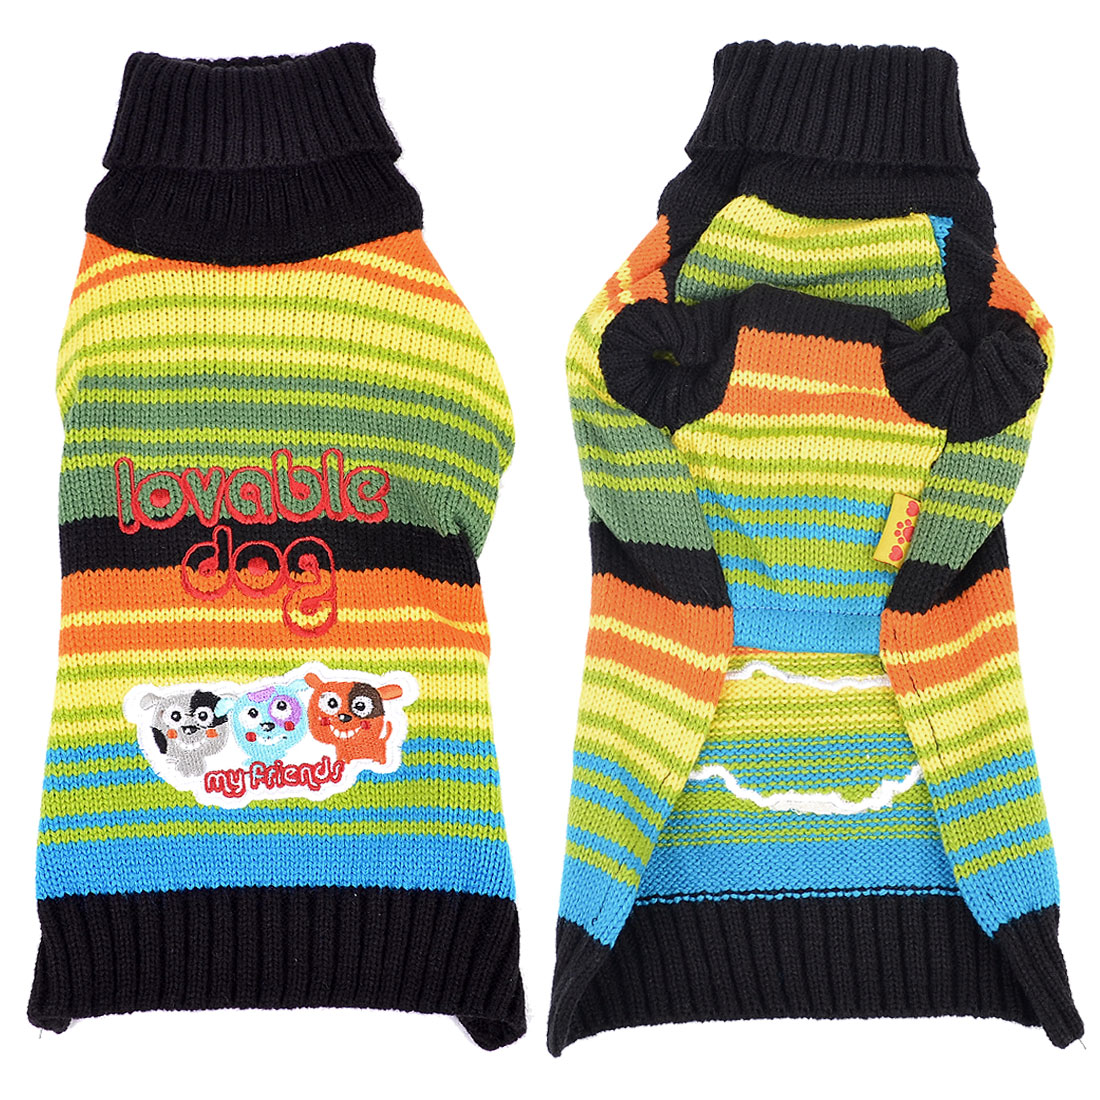 Colored Turtleneck Letter Printed Pet Dog Sweater Clothing Apparel L